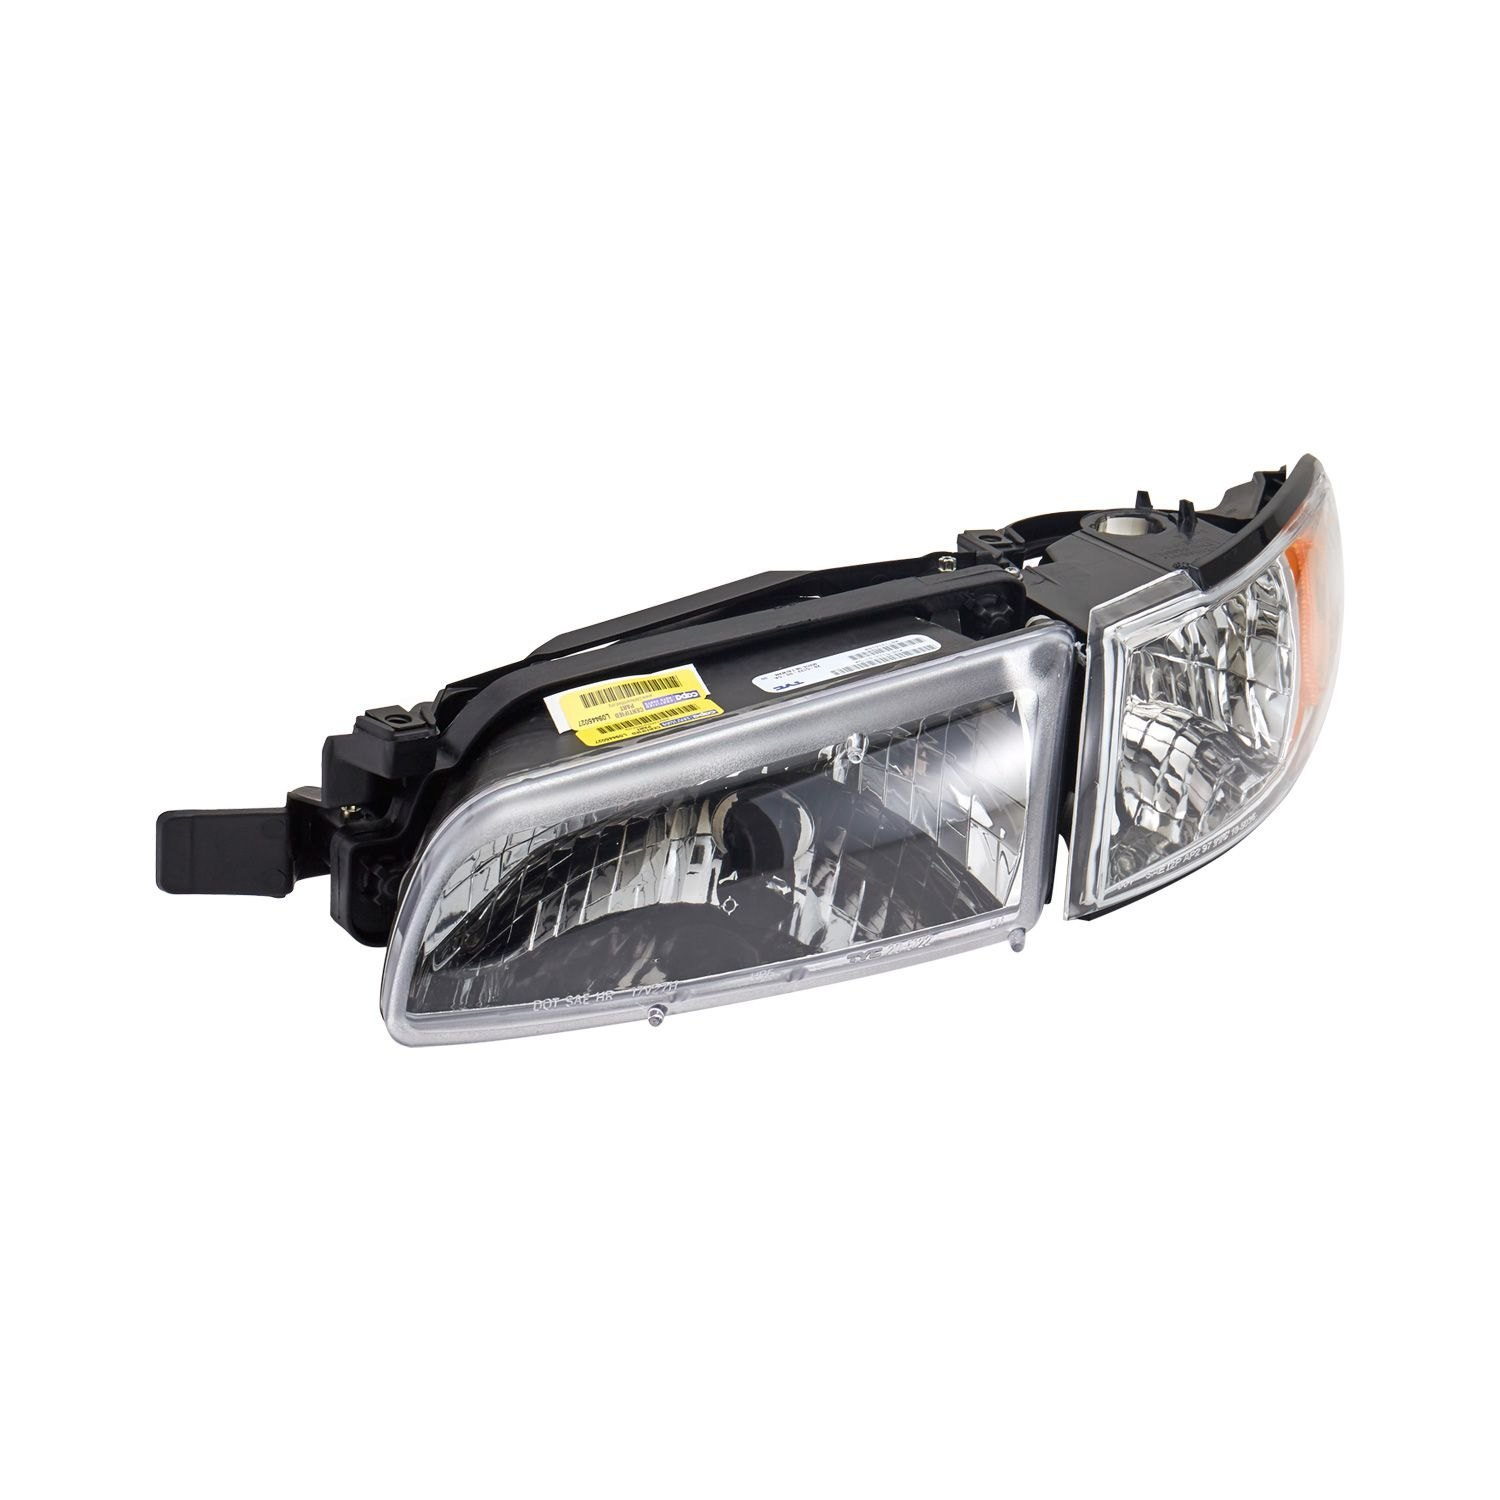 tyc pontiac grand prix 1997 replacement headlight. Black Bedroom Furniture Sets. Home Design Ideas